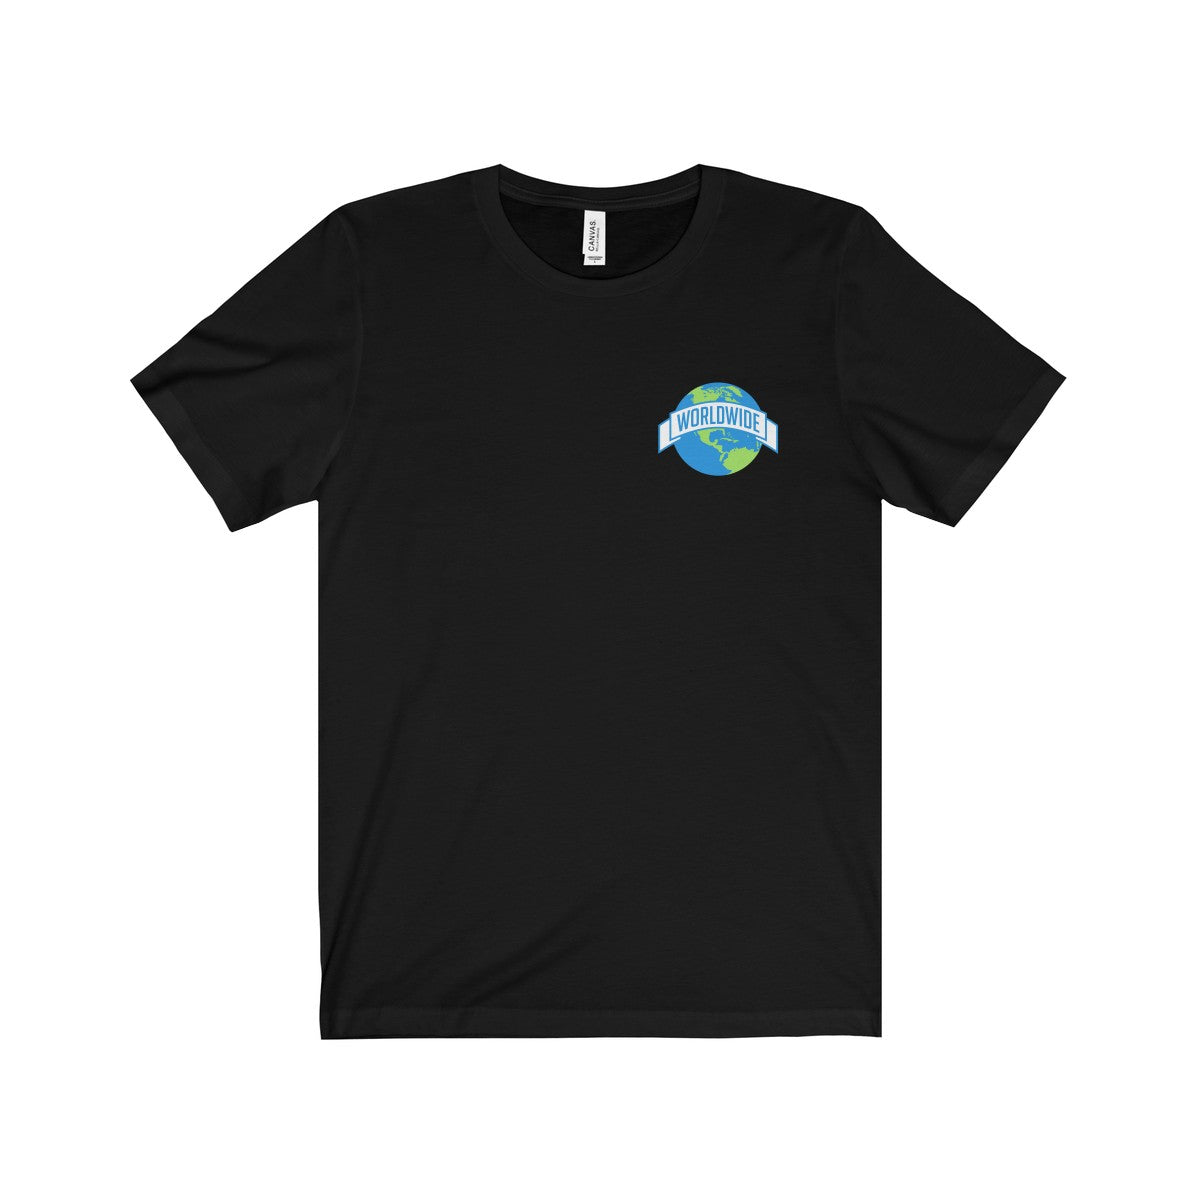 Worldwide Shirt